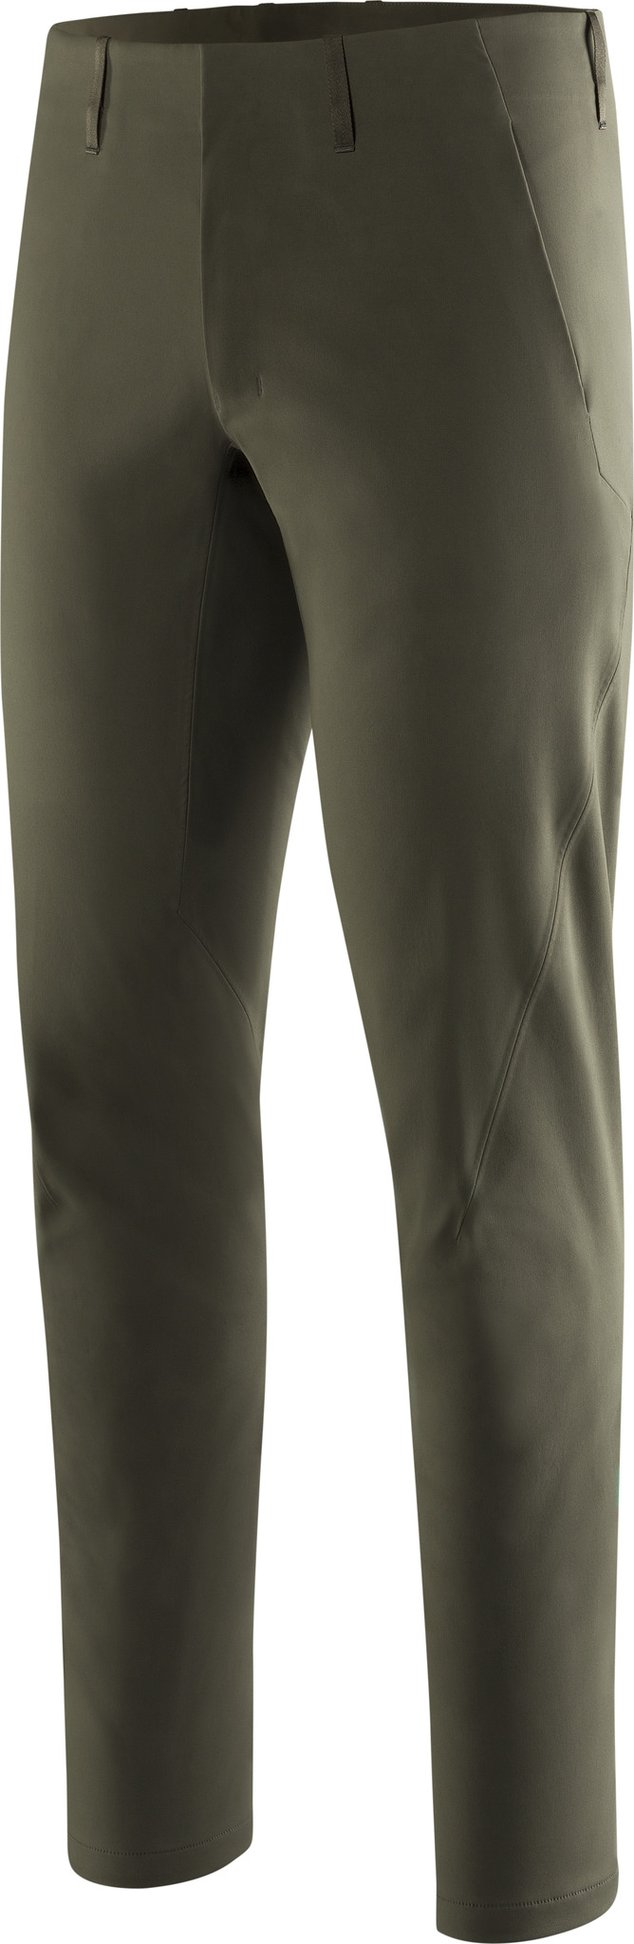 Veilance Indisce GORE-TEX Pant